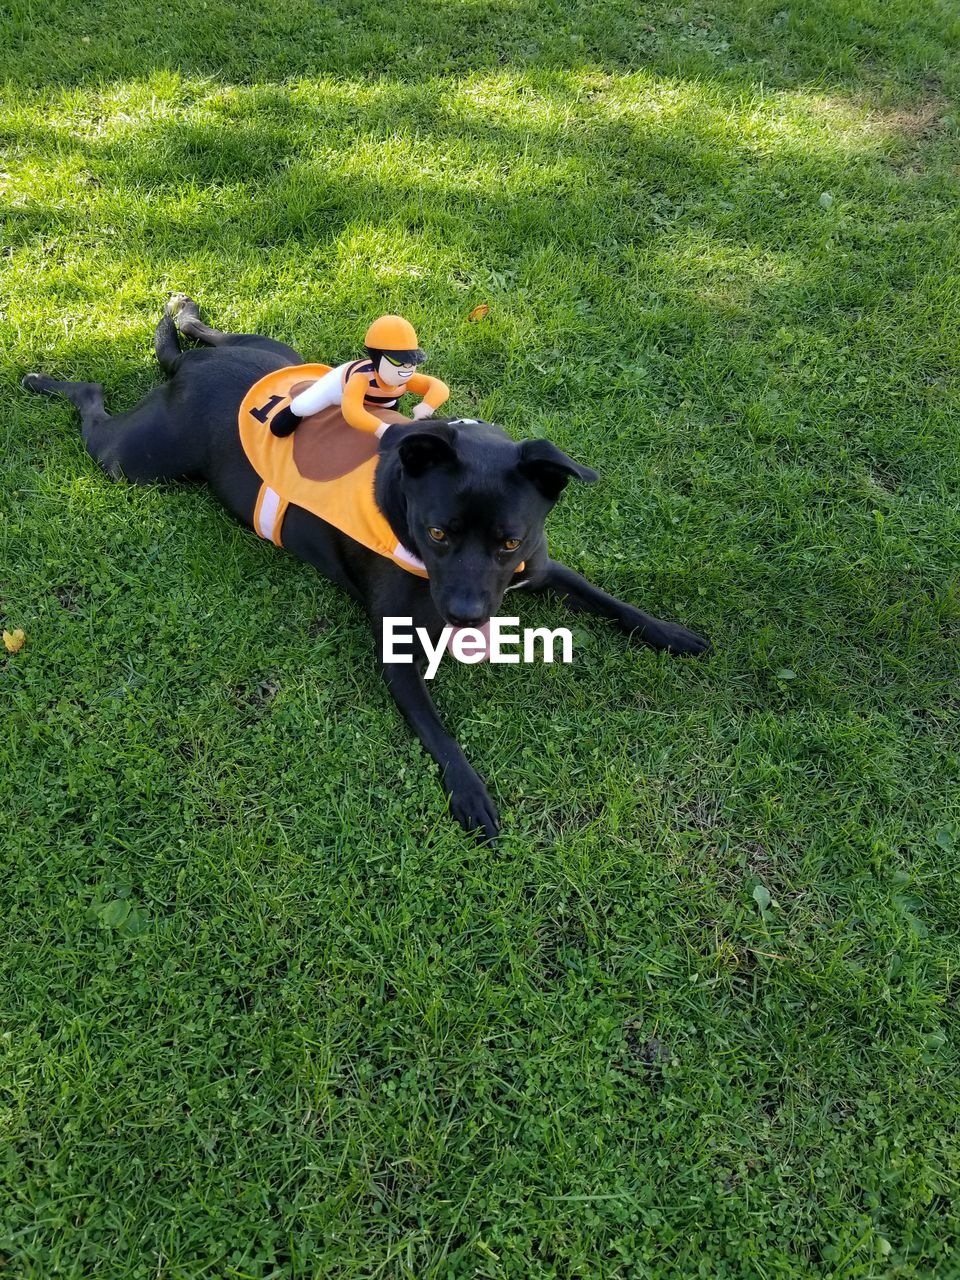 High angle view of stuffed toy on dog relaxing at grassy field